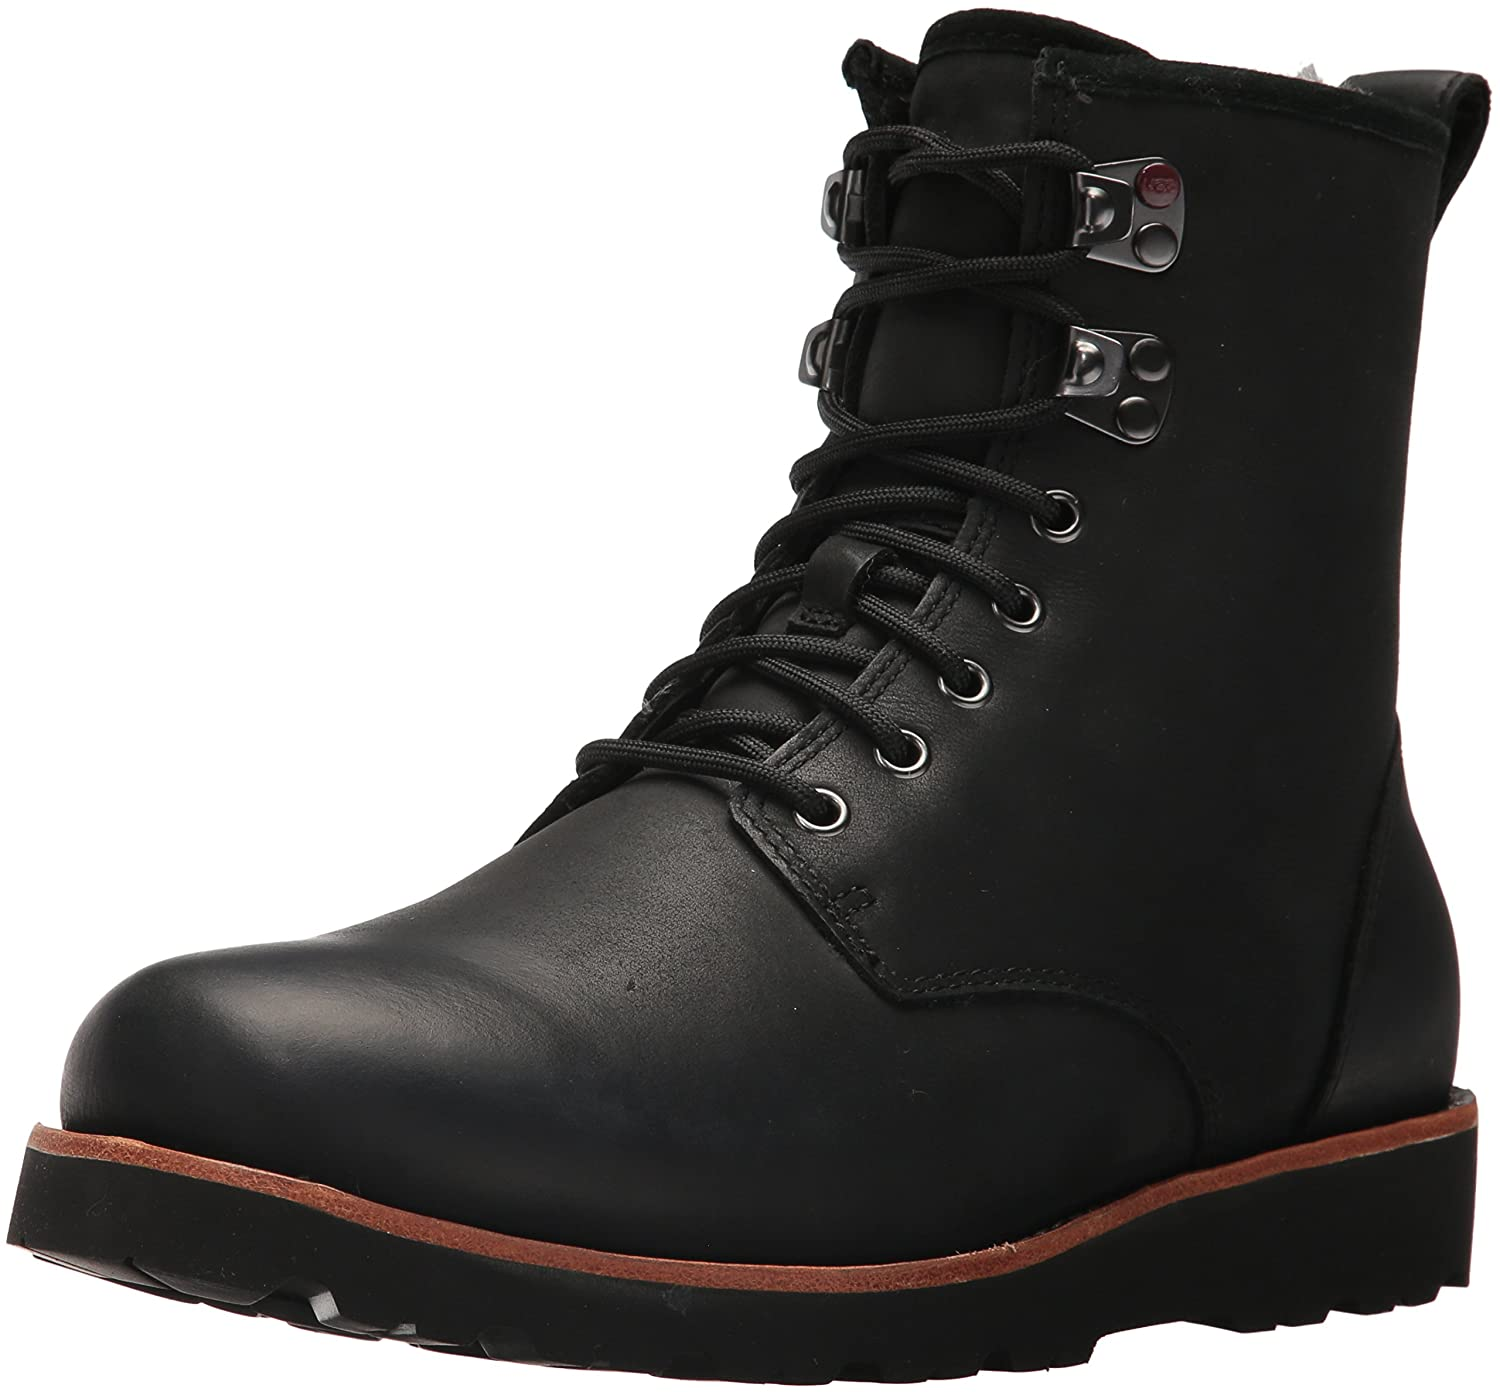 aeda7c606f4 UGG Men's Hannen Tl Winter Boot